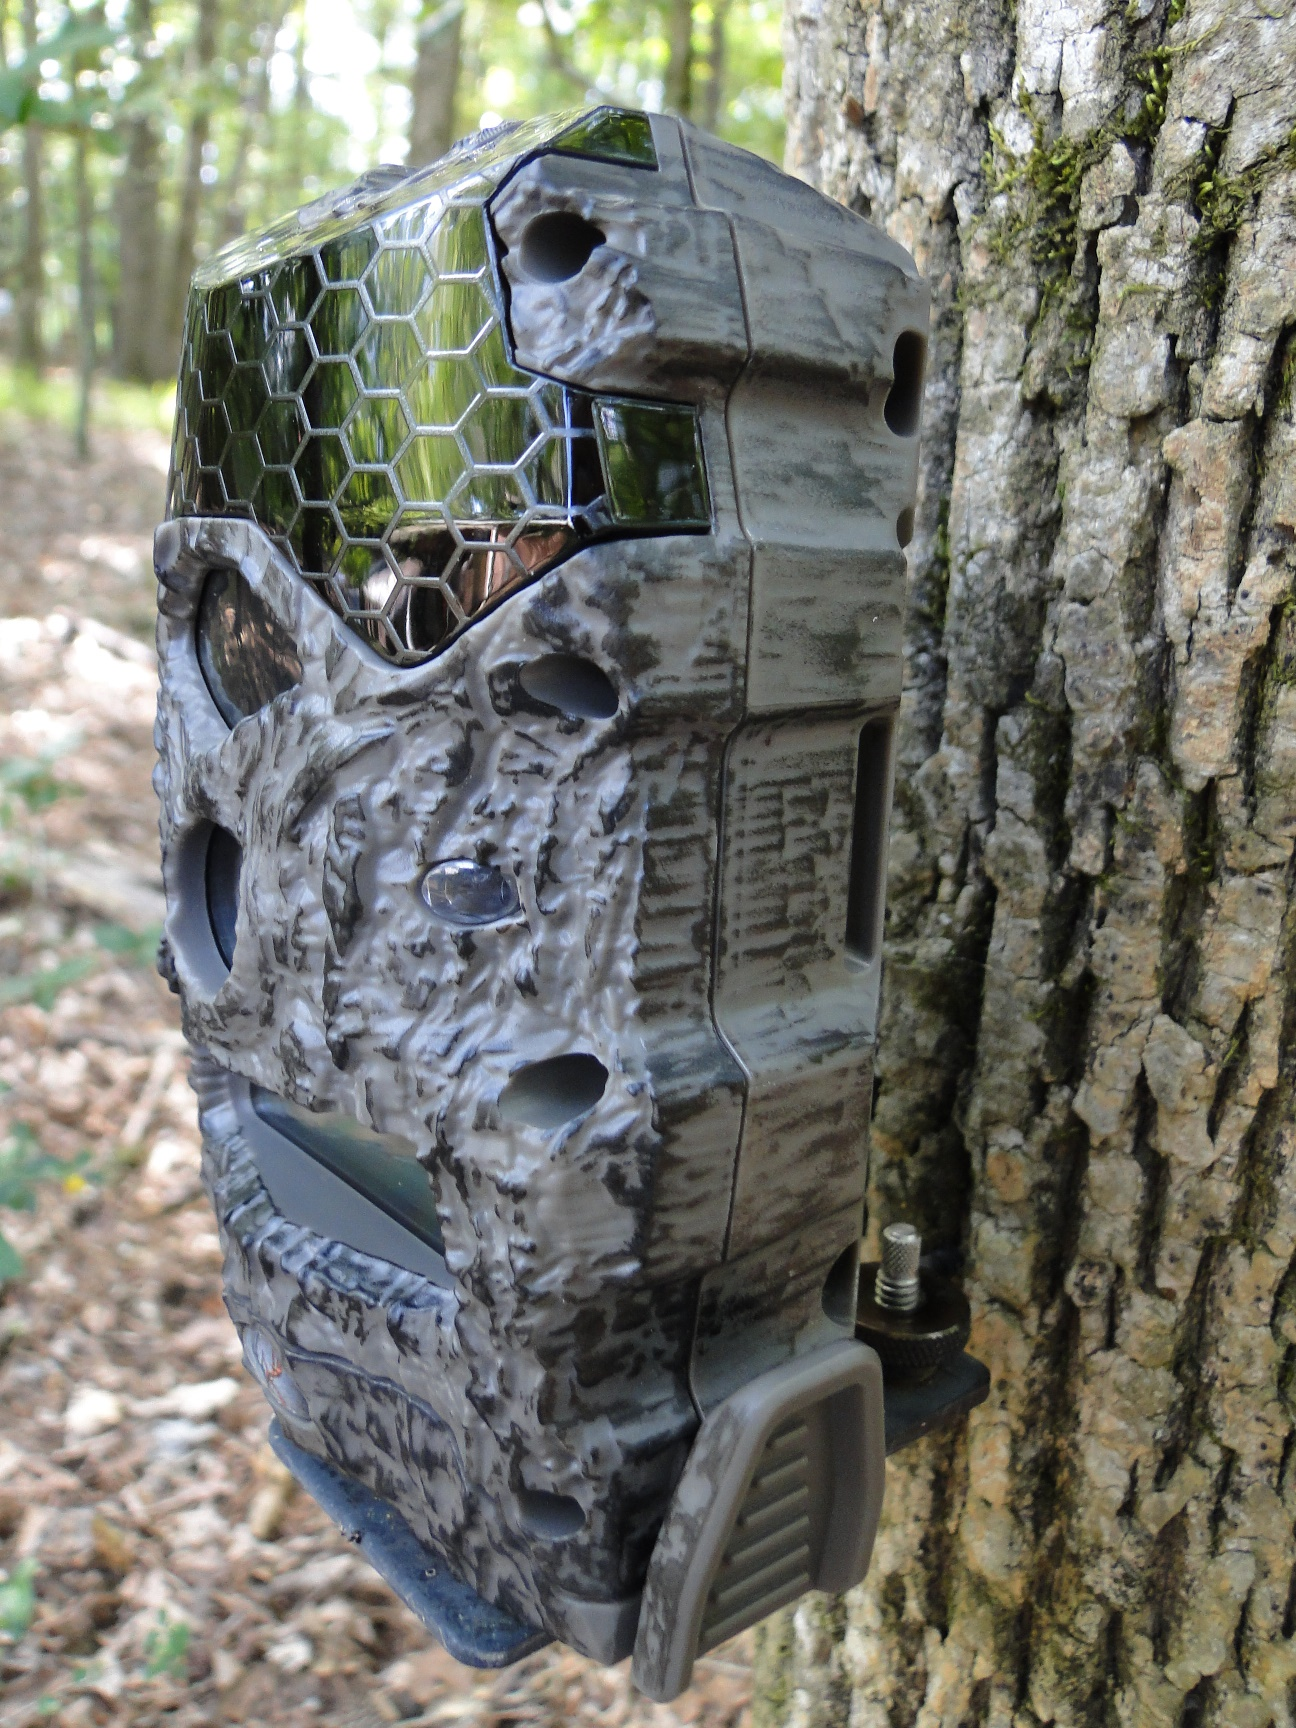 2017 Wildgame Mirage 16 Lightsout Camera review – Chasingame com